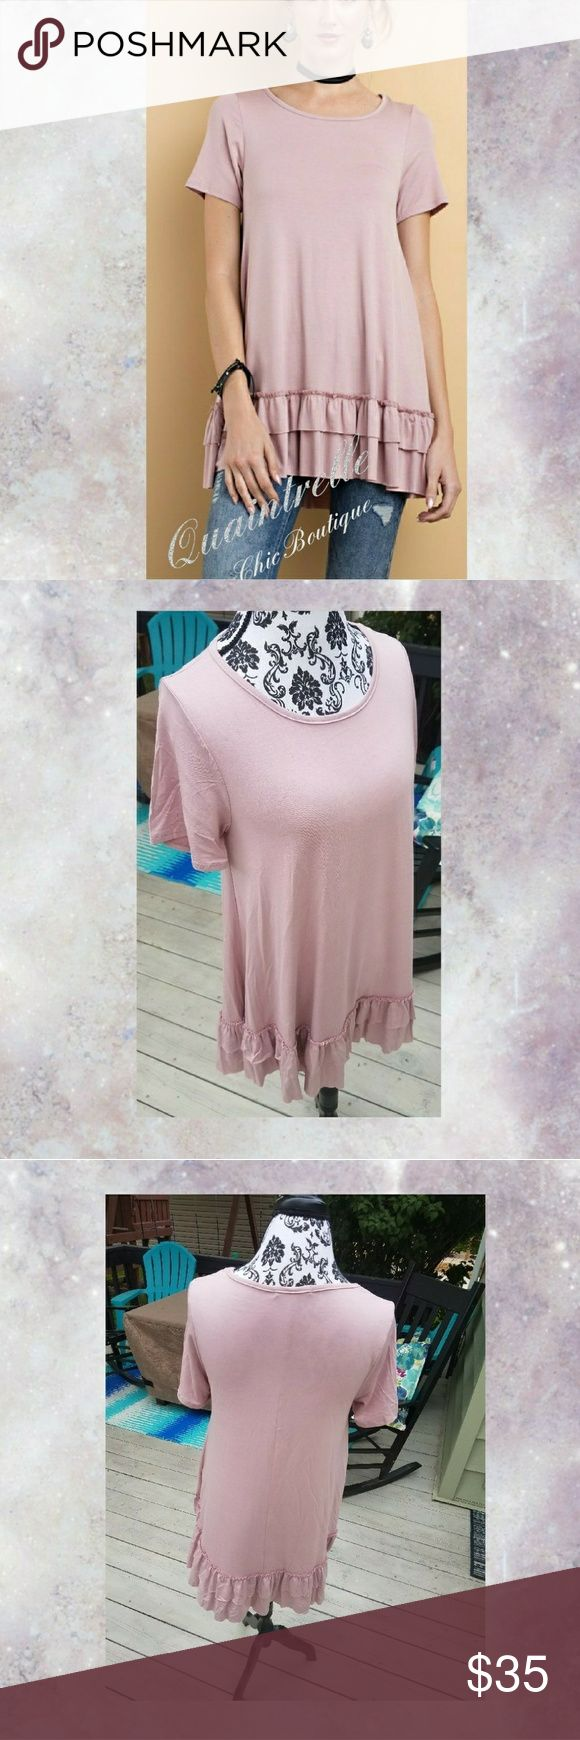 "🆕GENACHE RUFFLES TUNIC Indulge yourself in the decadence of this double ruffle tunic. Short sleeves and a round neck lead into a loose  flowing body trimmed with a raw edge of double ruffles. Made of soft, heavy rayon span fabrication. Available in Dusty Mauve and Cloud Grey. Measurements laying flat: S- Bust 16"" Length 29.5"" M- Bust 17"" Length 30.5"" L- Bust 18"" Length 31.5"" Tops Tunics"